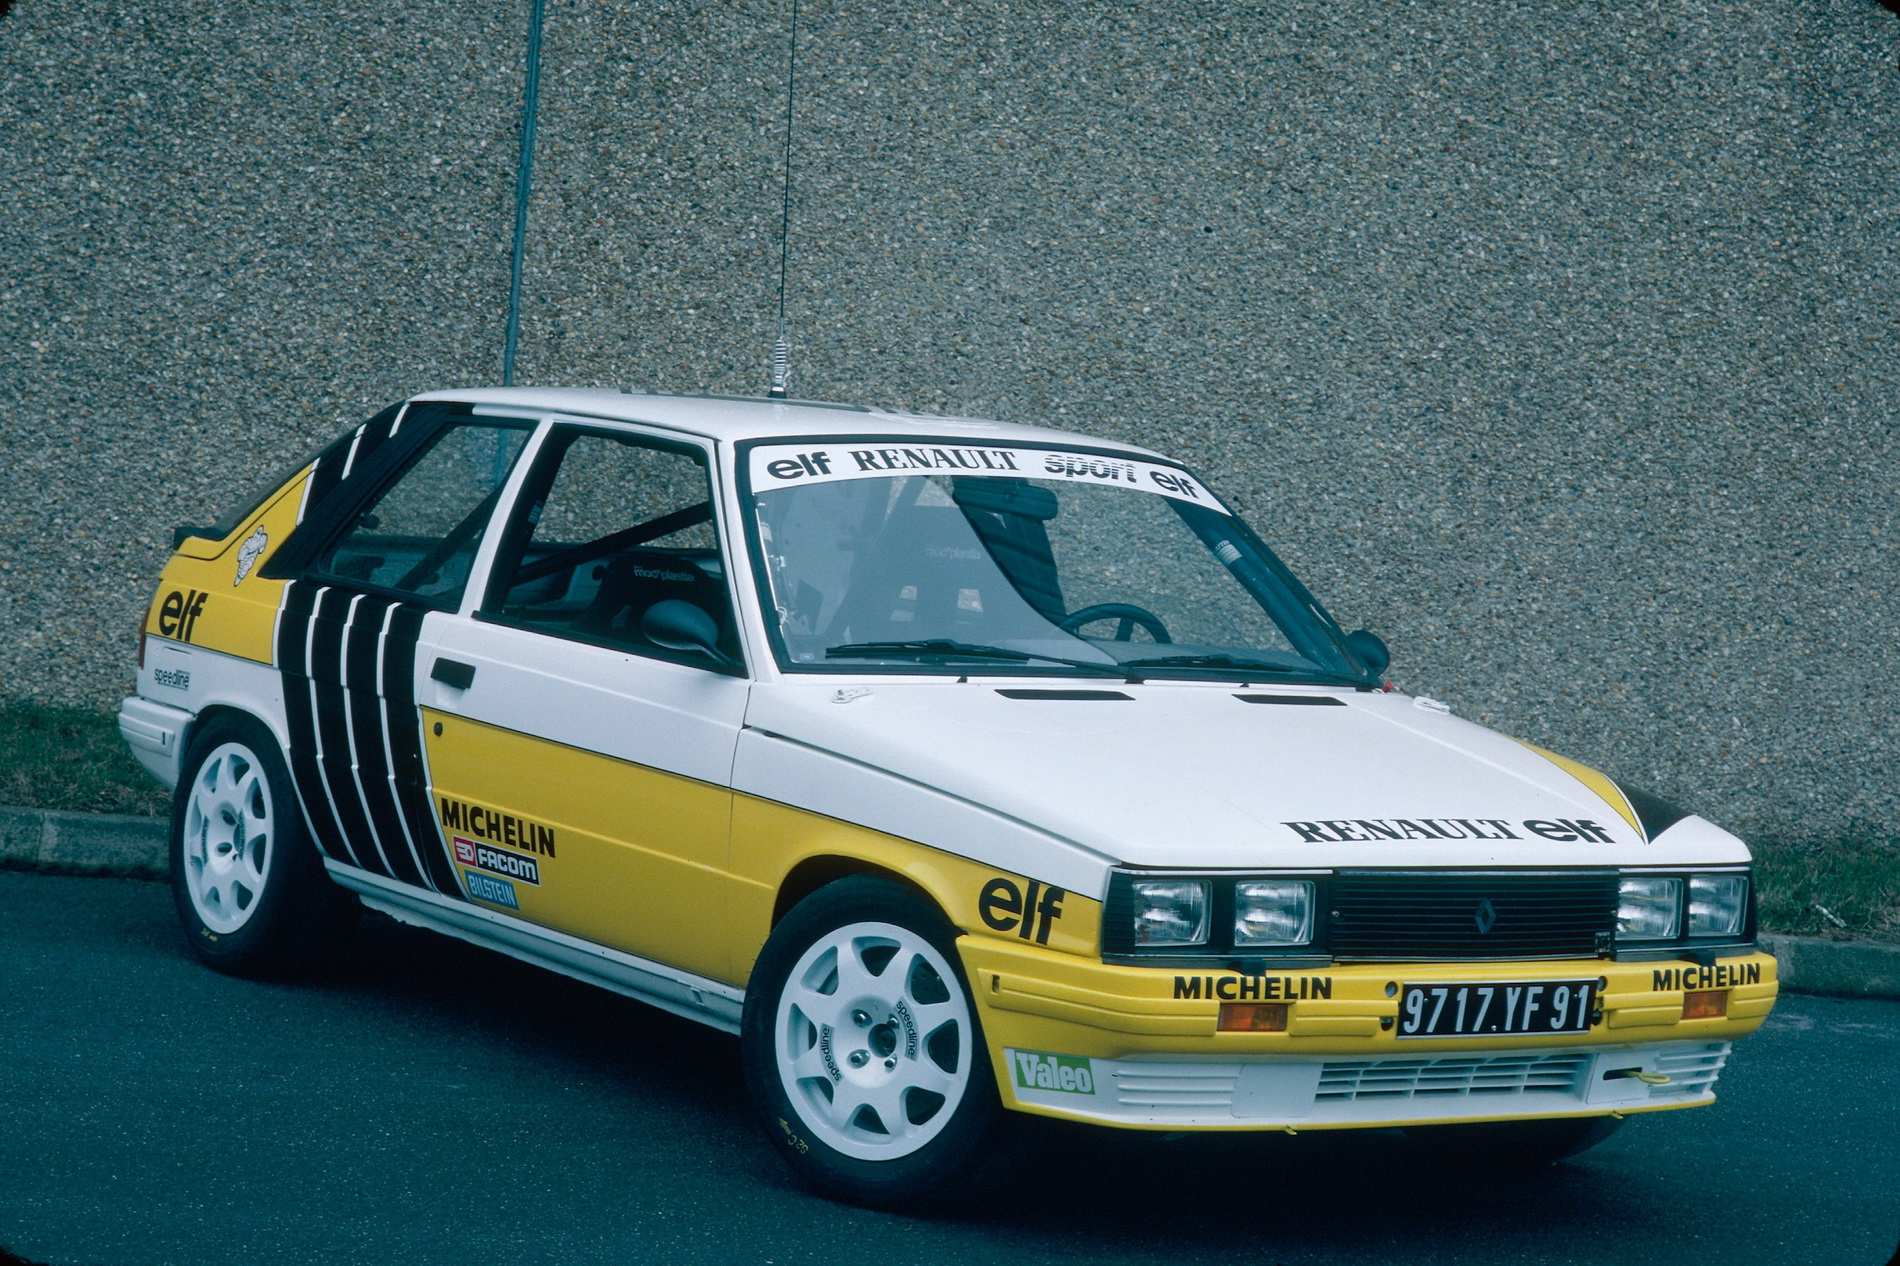 1987 – Renault 11 Turbo